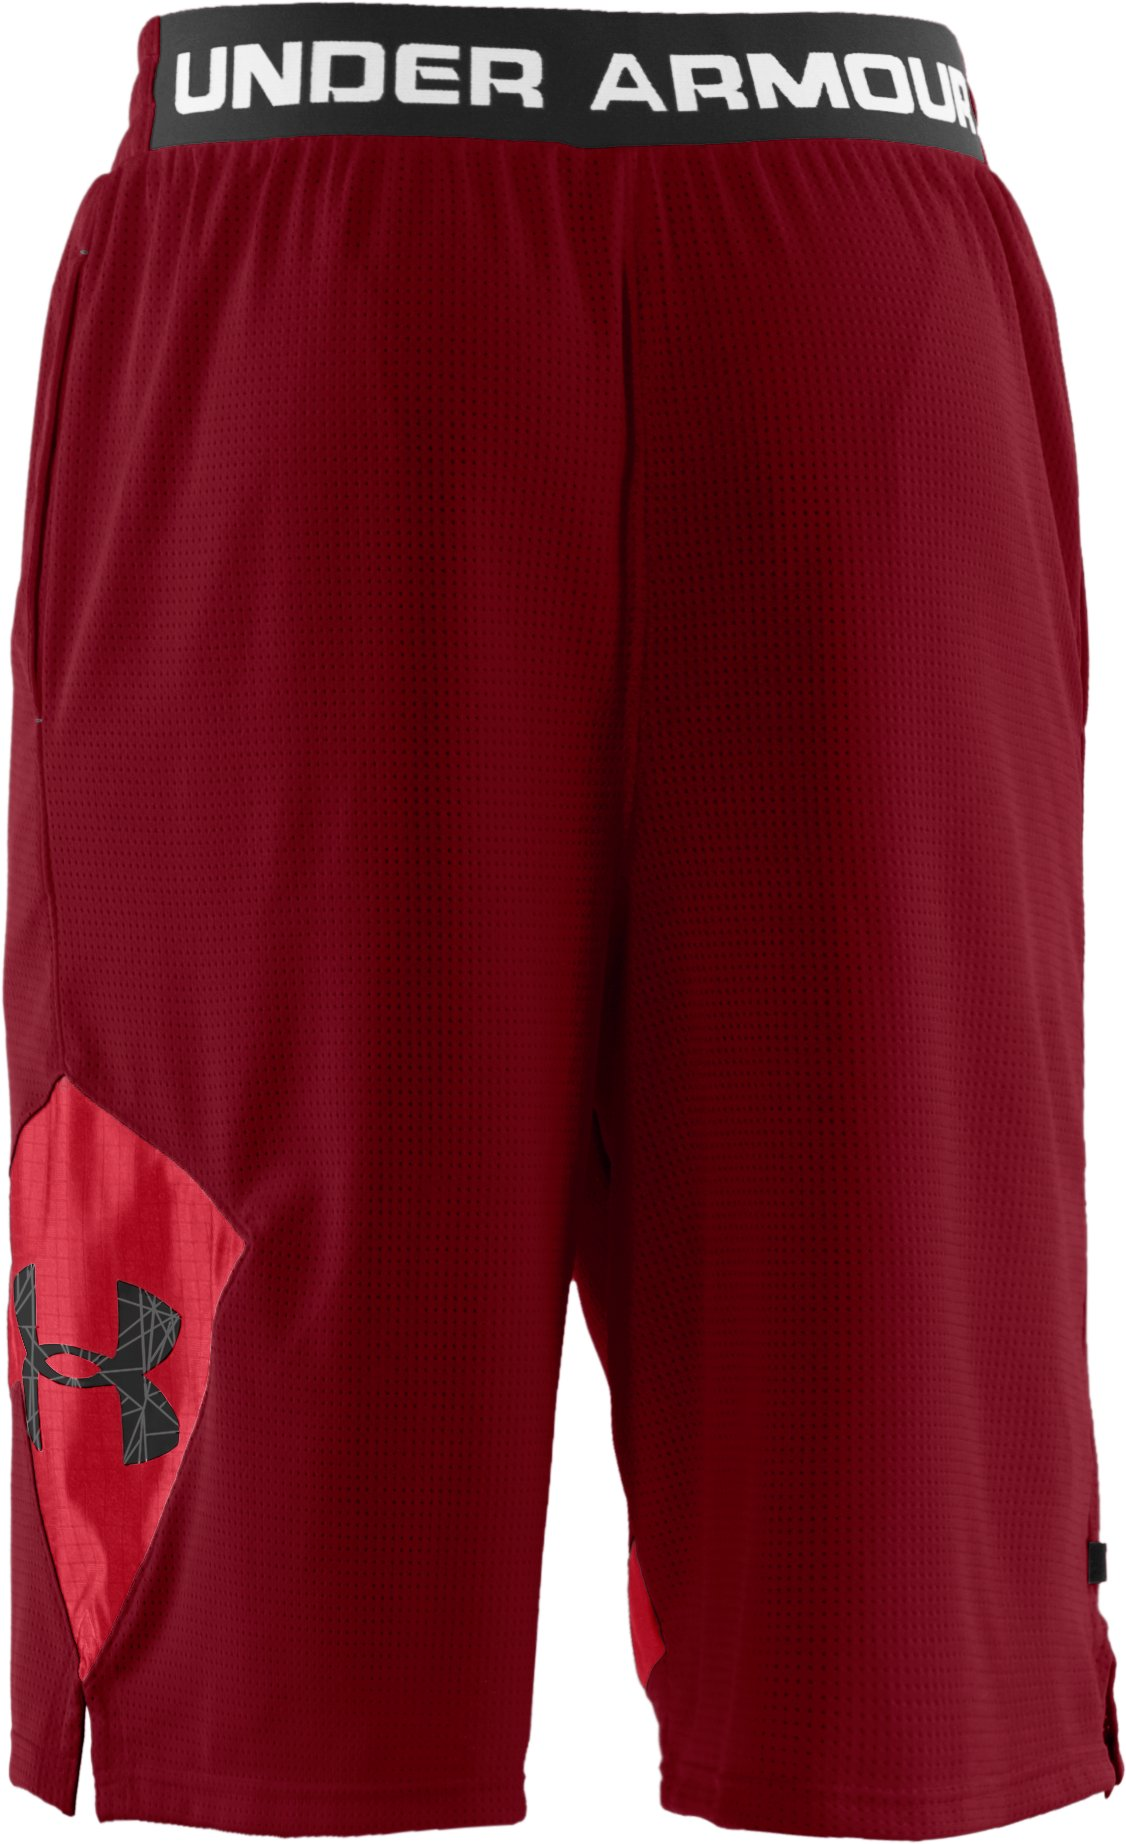 "Men's UA Floor General 12"" Basketball Shorts, Crimson"